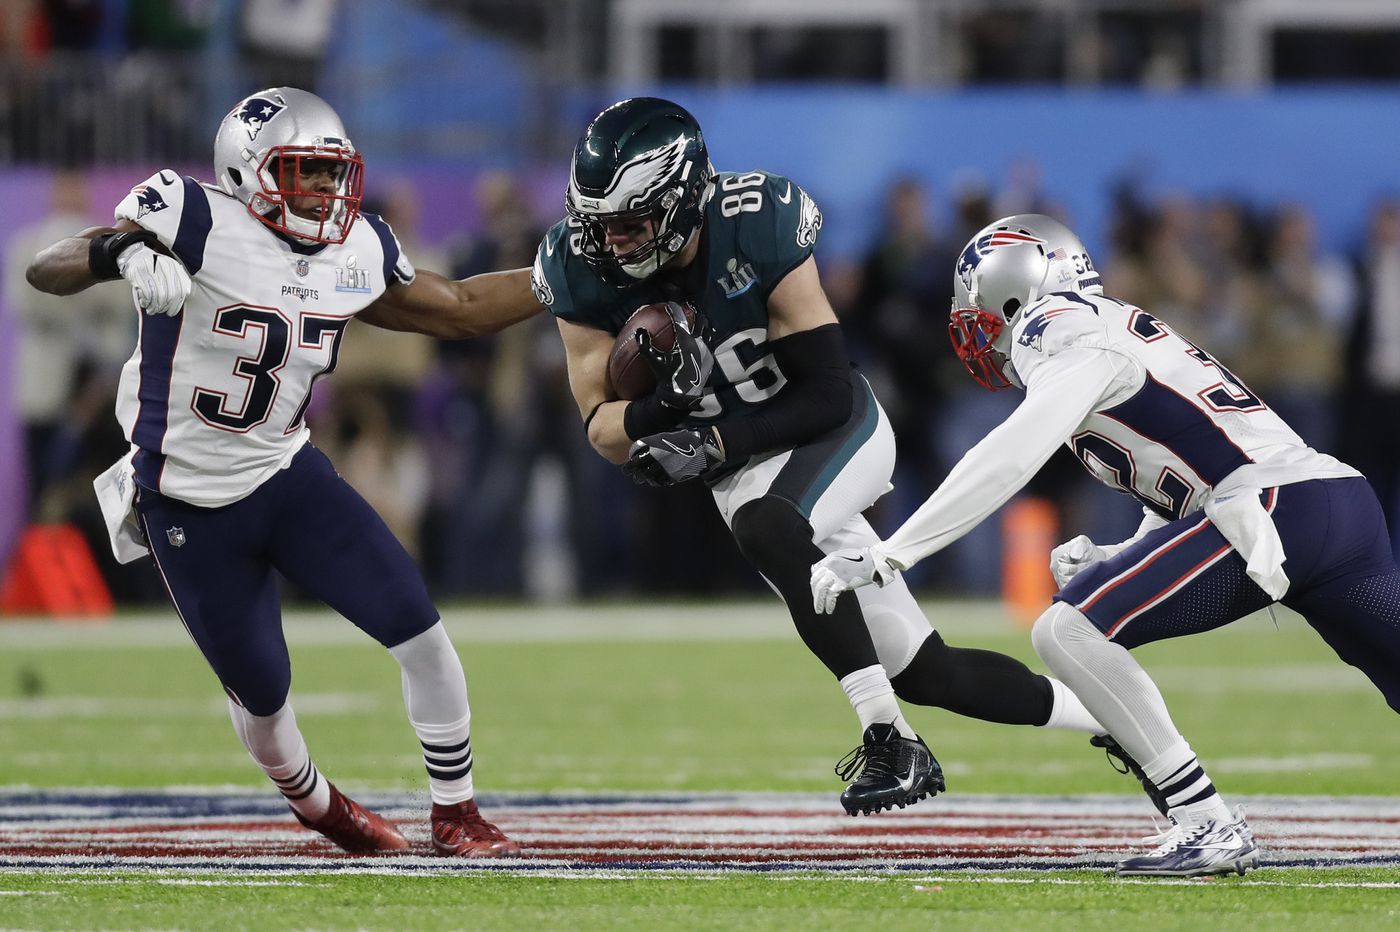 An Eagles-Patriots point spread just went up in New Jersey: Dig out the dog masks